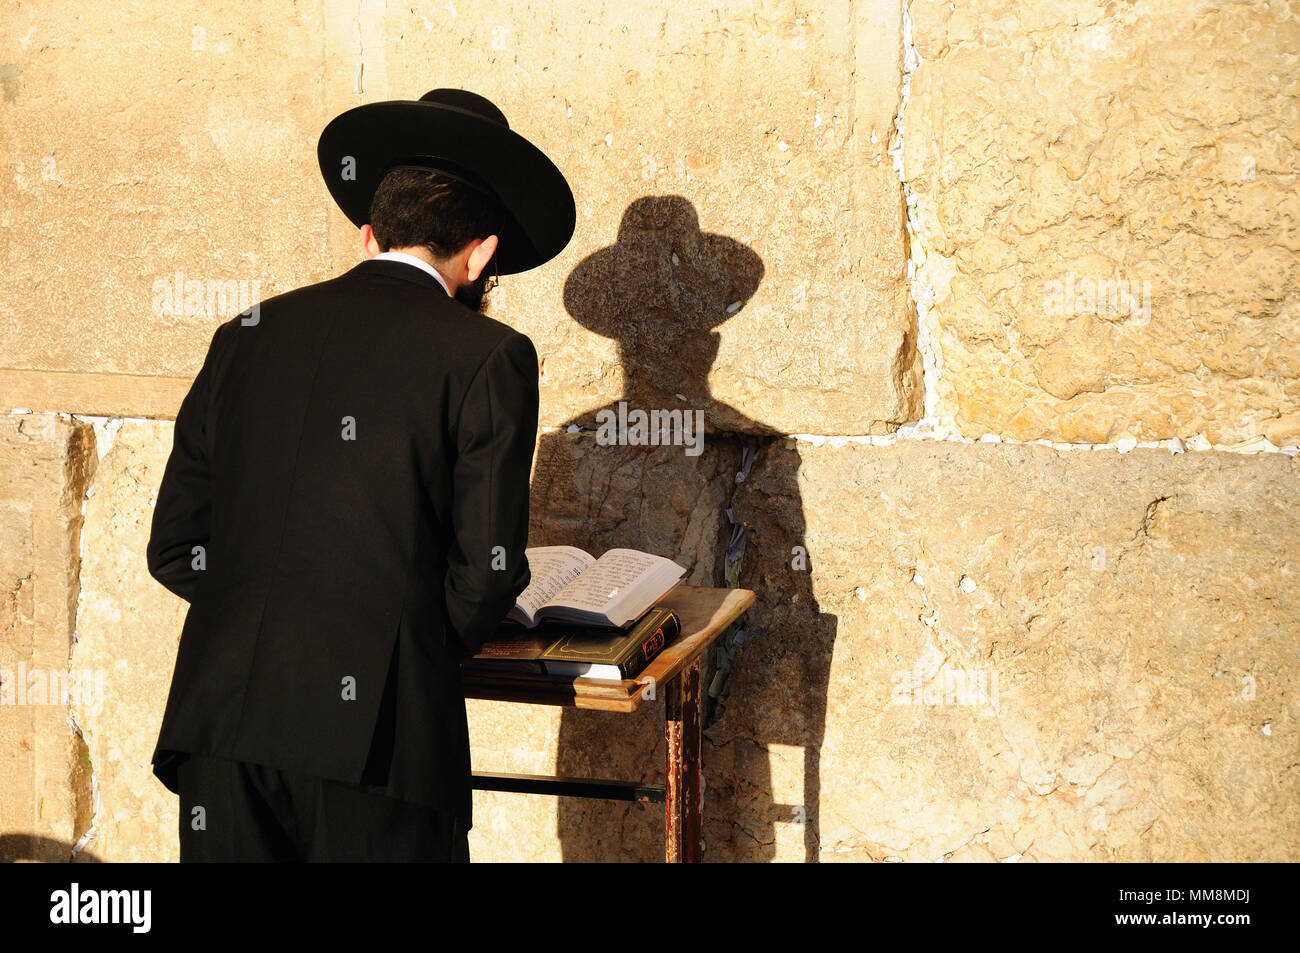 Religious orthodox jew praying at the Western wall in Old Jerusalem city. - Stock Image